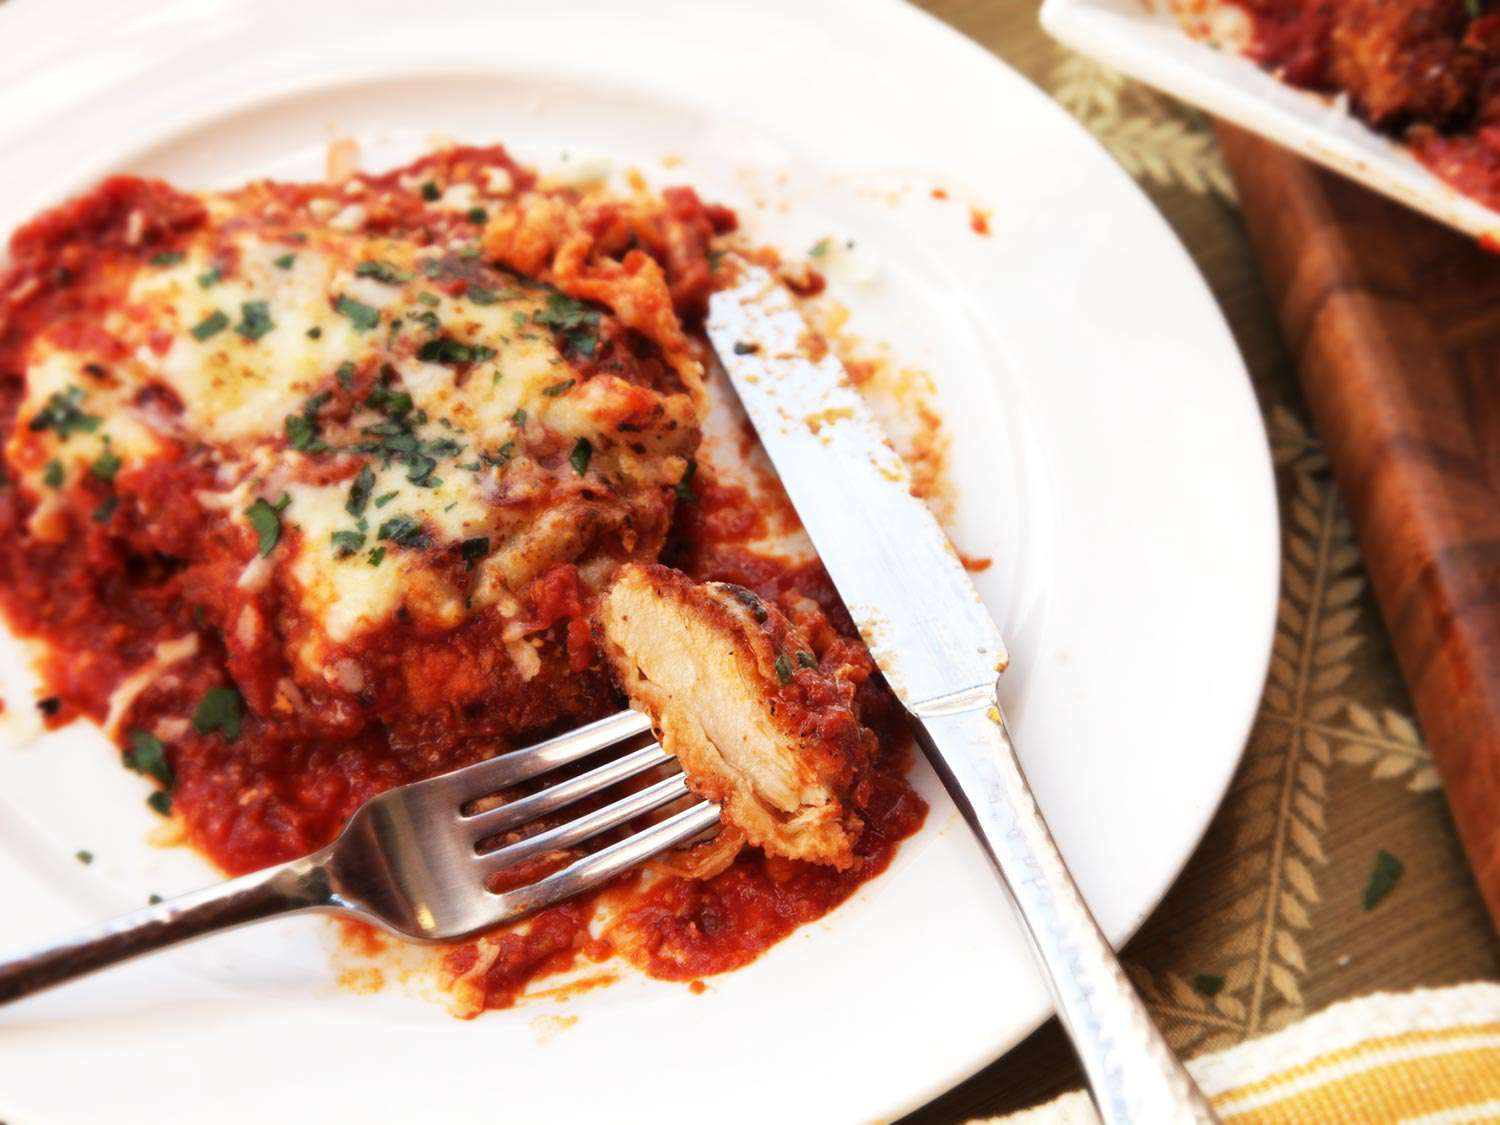 A forkful of chicken parmesan